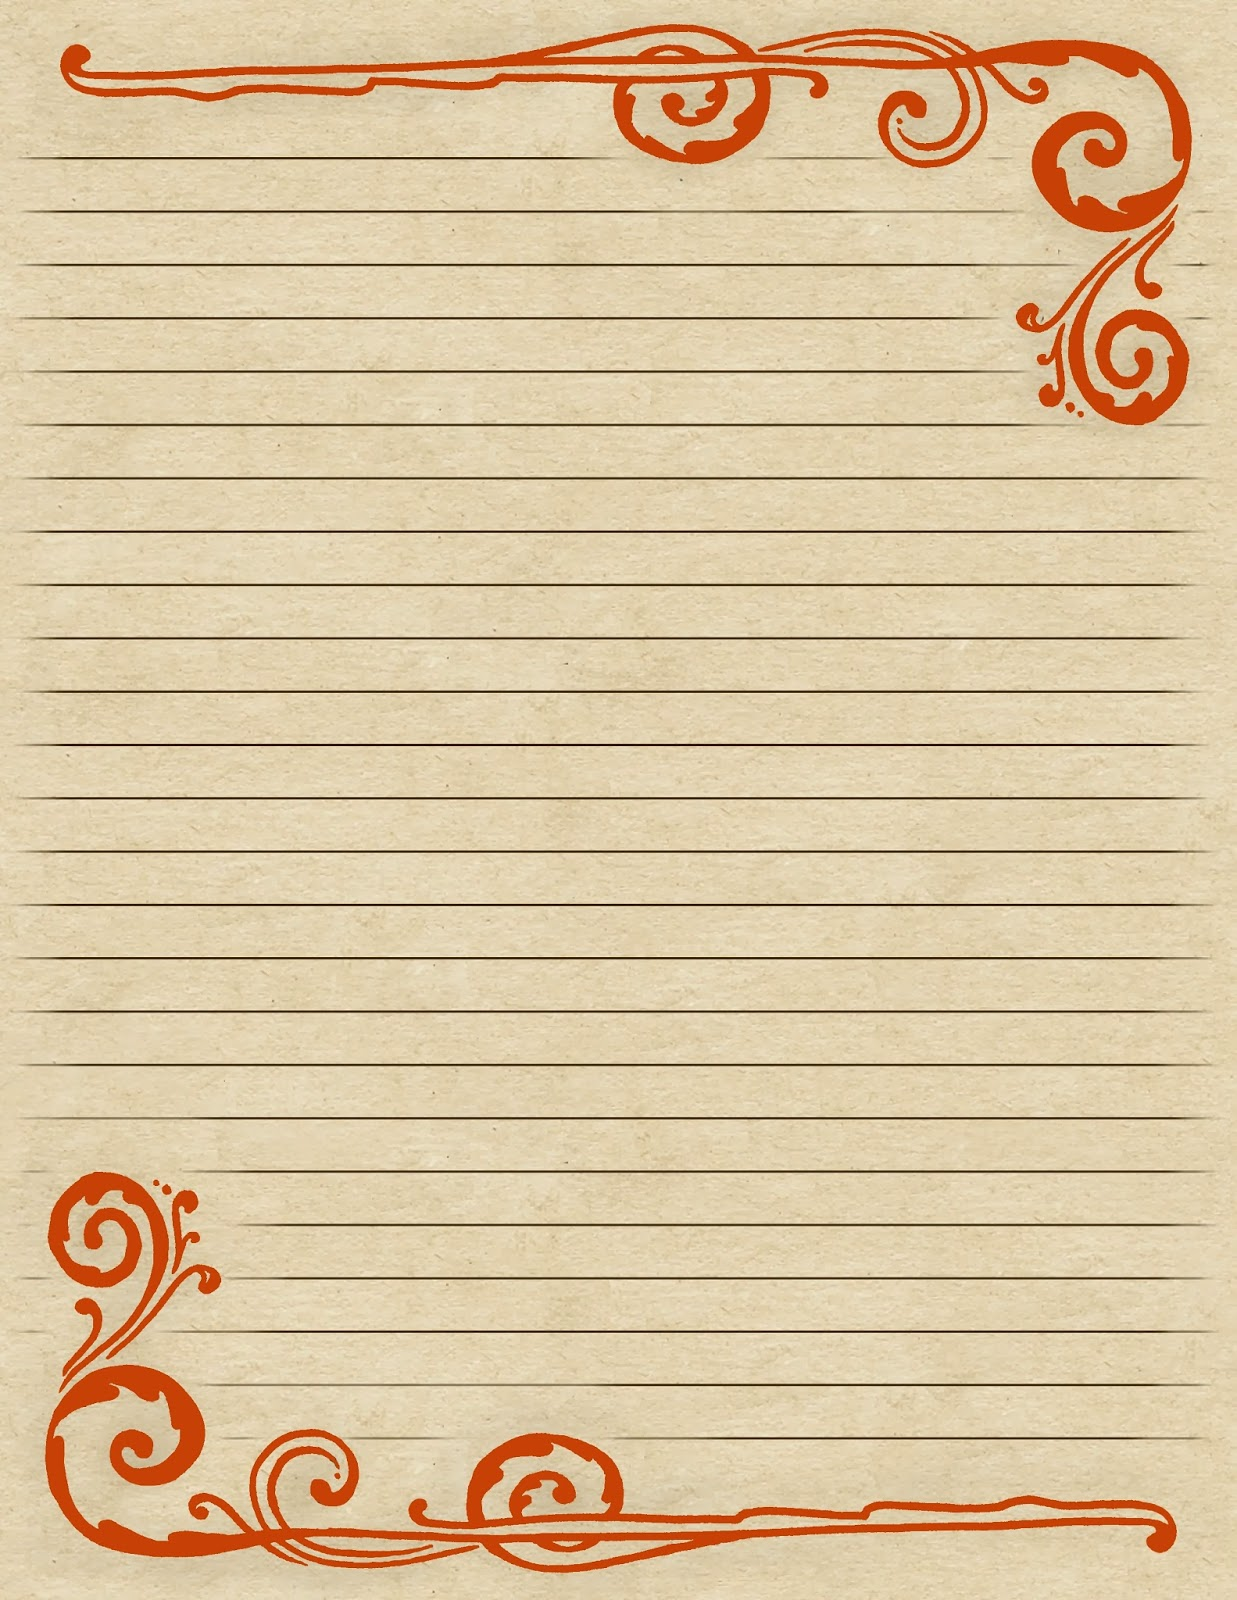 Lined border paper